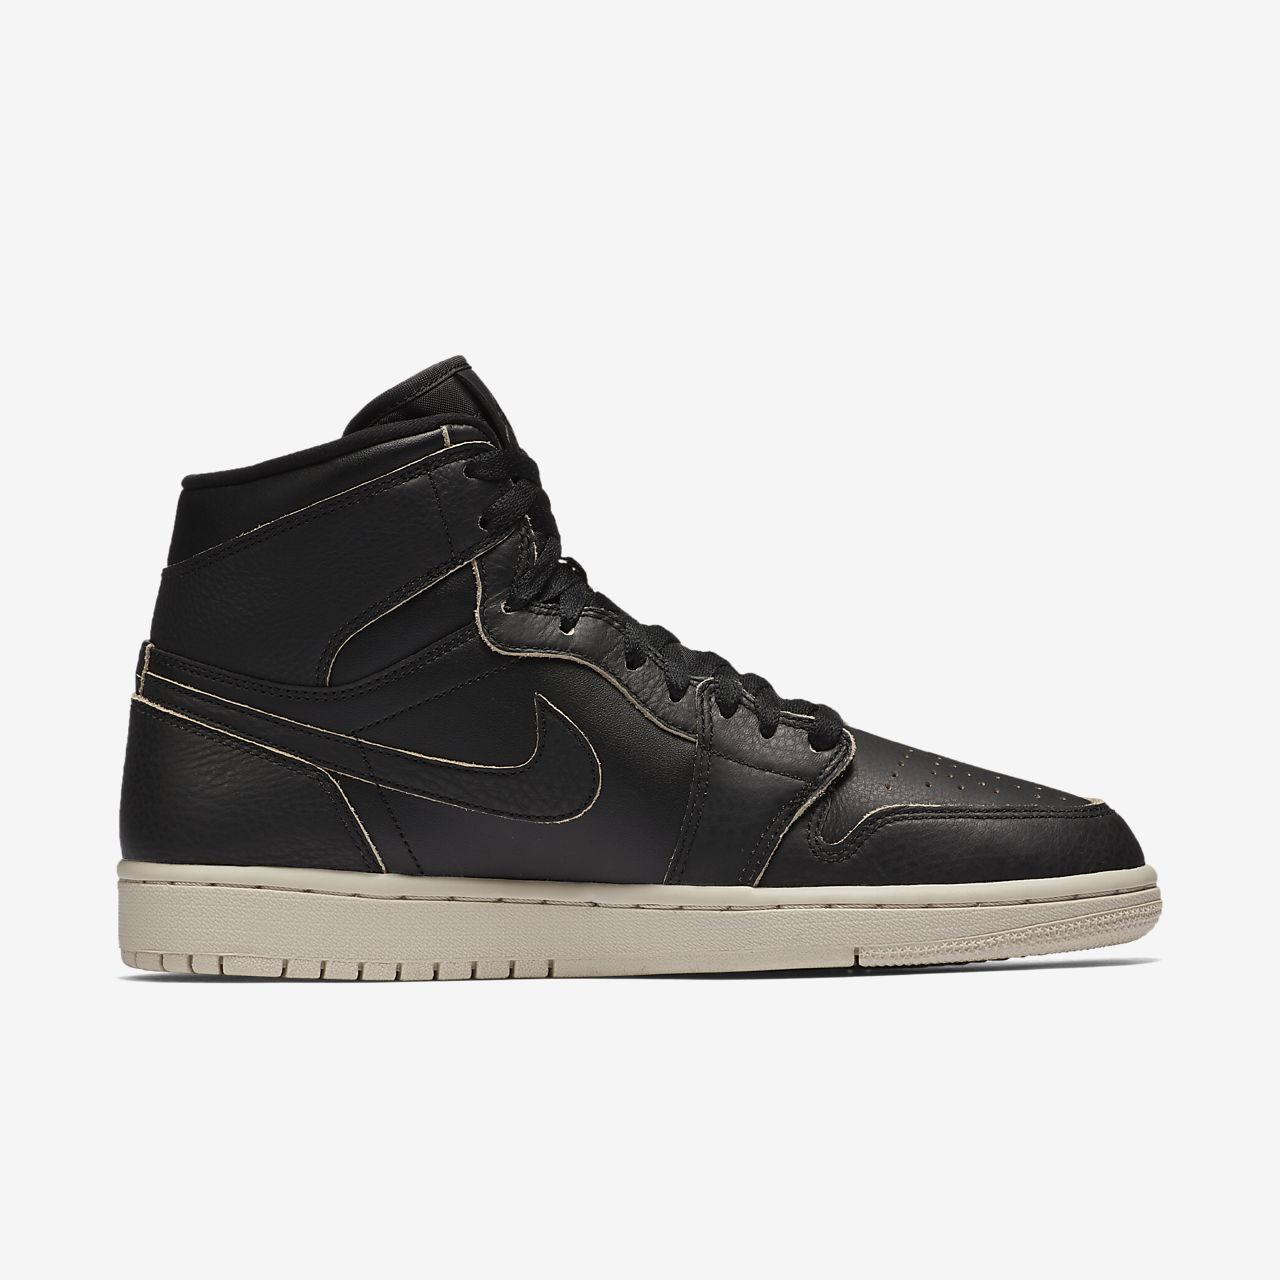 air jordan 1 retro high nz